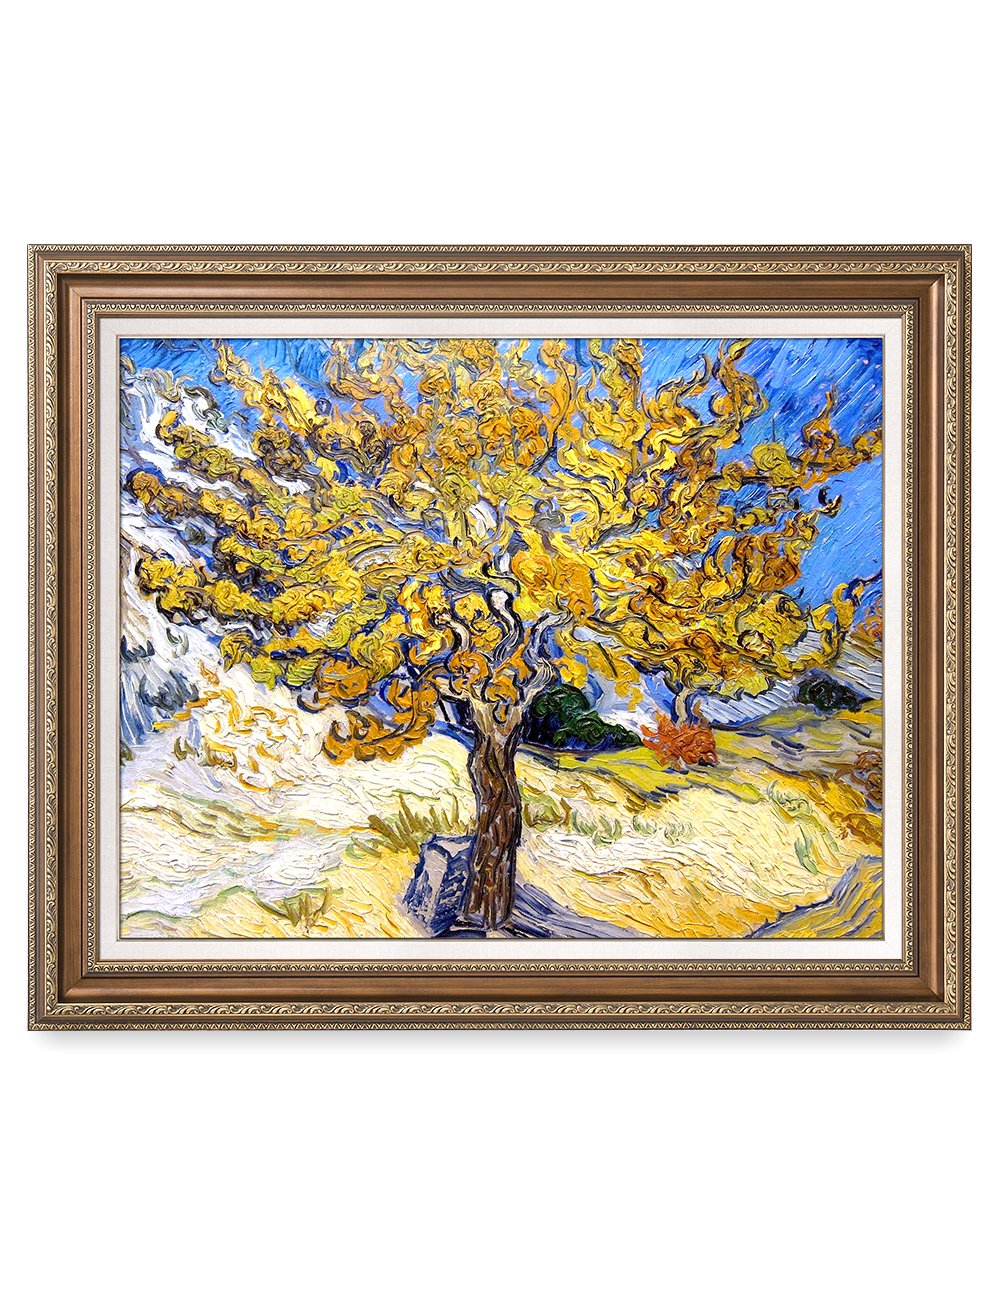 DECORARTS - The Mulberry Tree, Vincent Van Gogh Art Reproduction. Giclee Print& Framed Art for Wall Decor. 30x24, Framed Size: 35x29